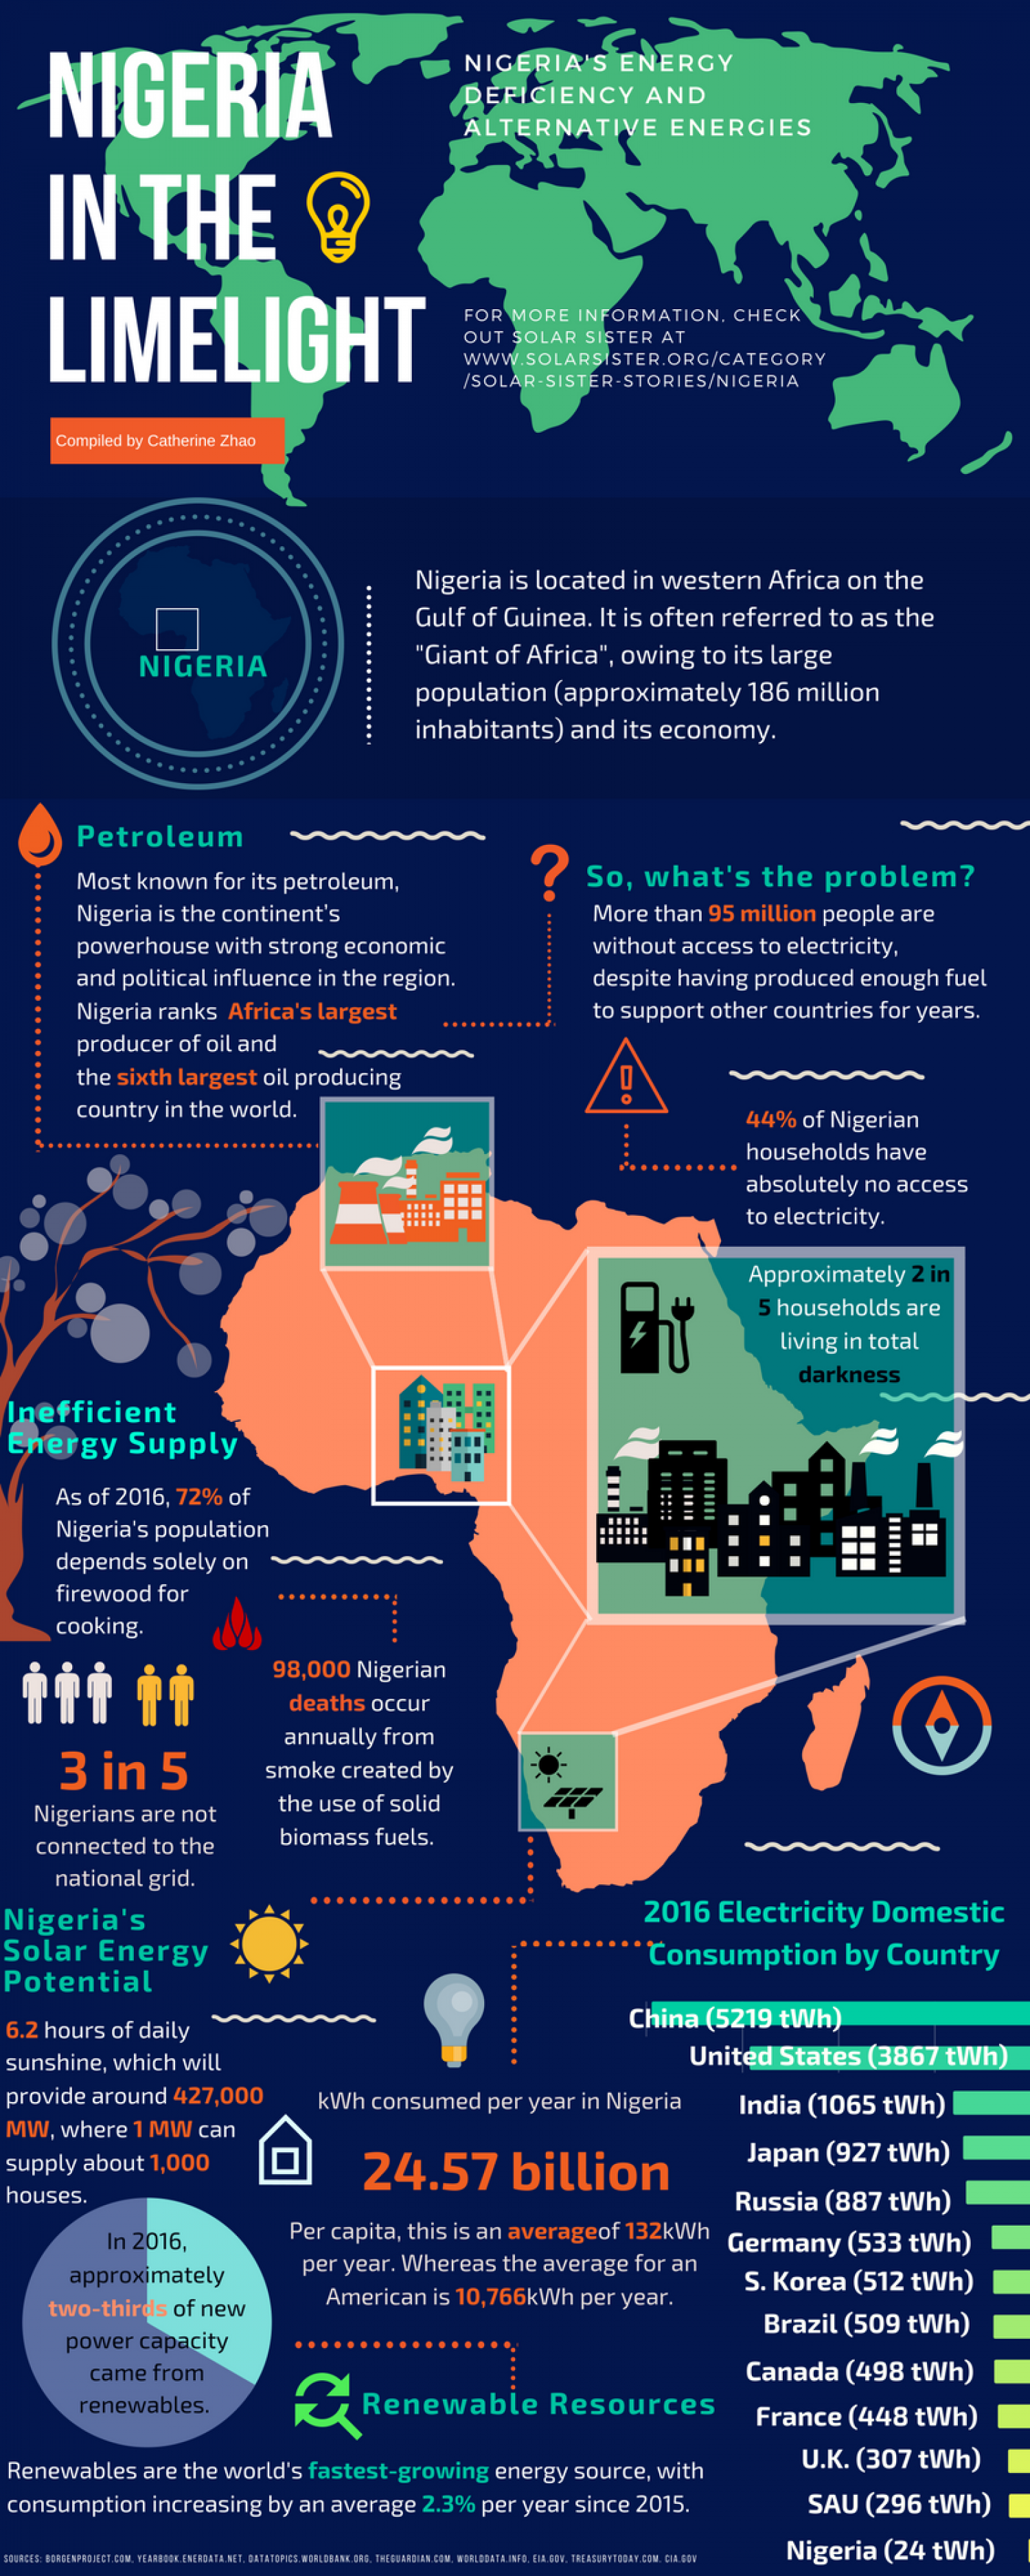 Nigeria in the Limelight Infographic